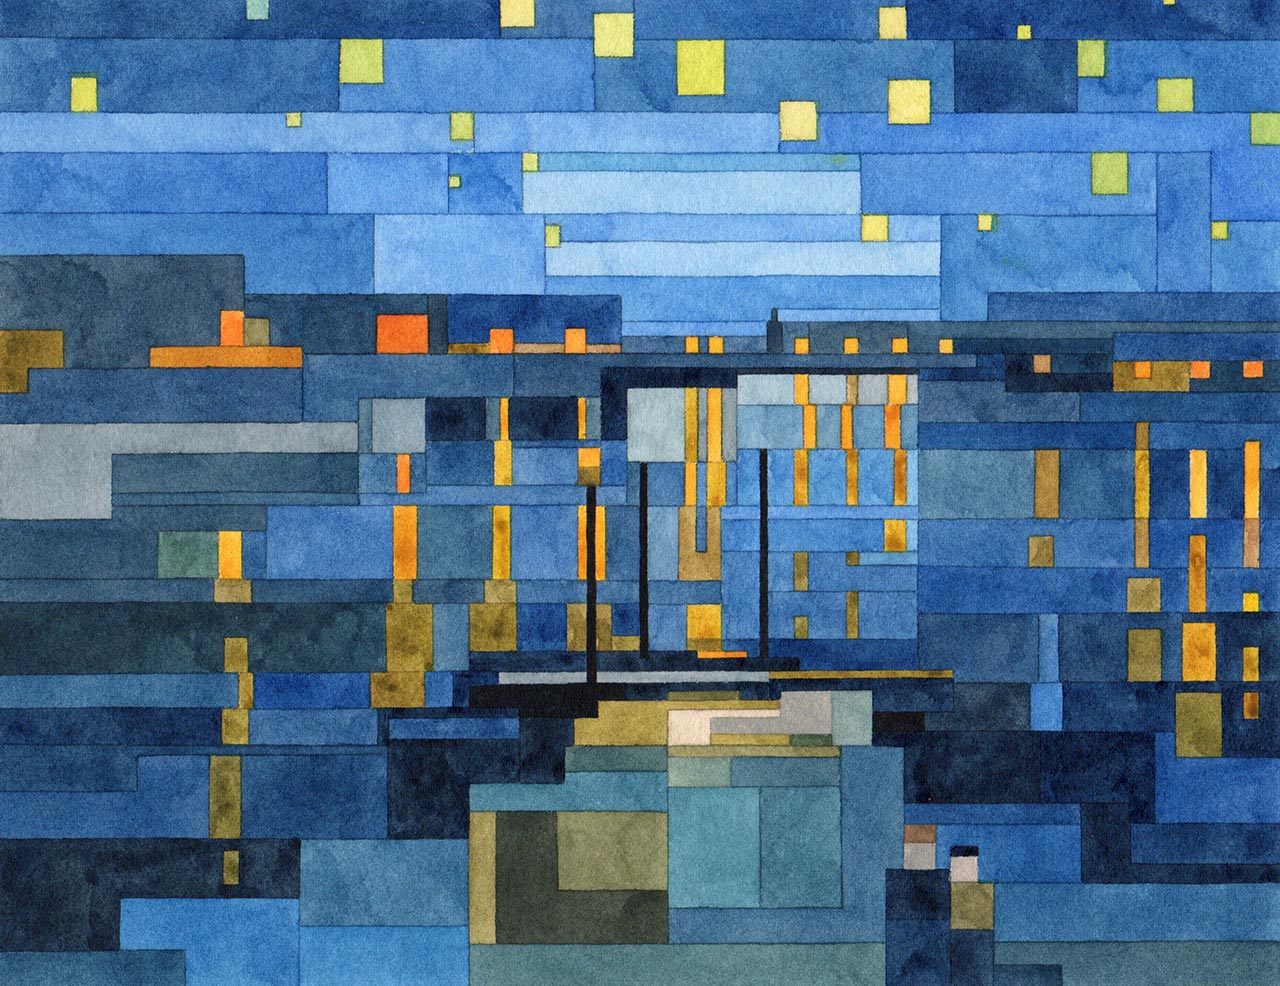 Adam Lister, Starry Night Over the Rhone. Geometrical watercolour inspired by Van Gogh © the artist.